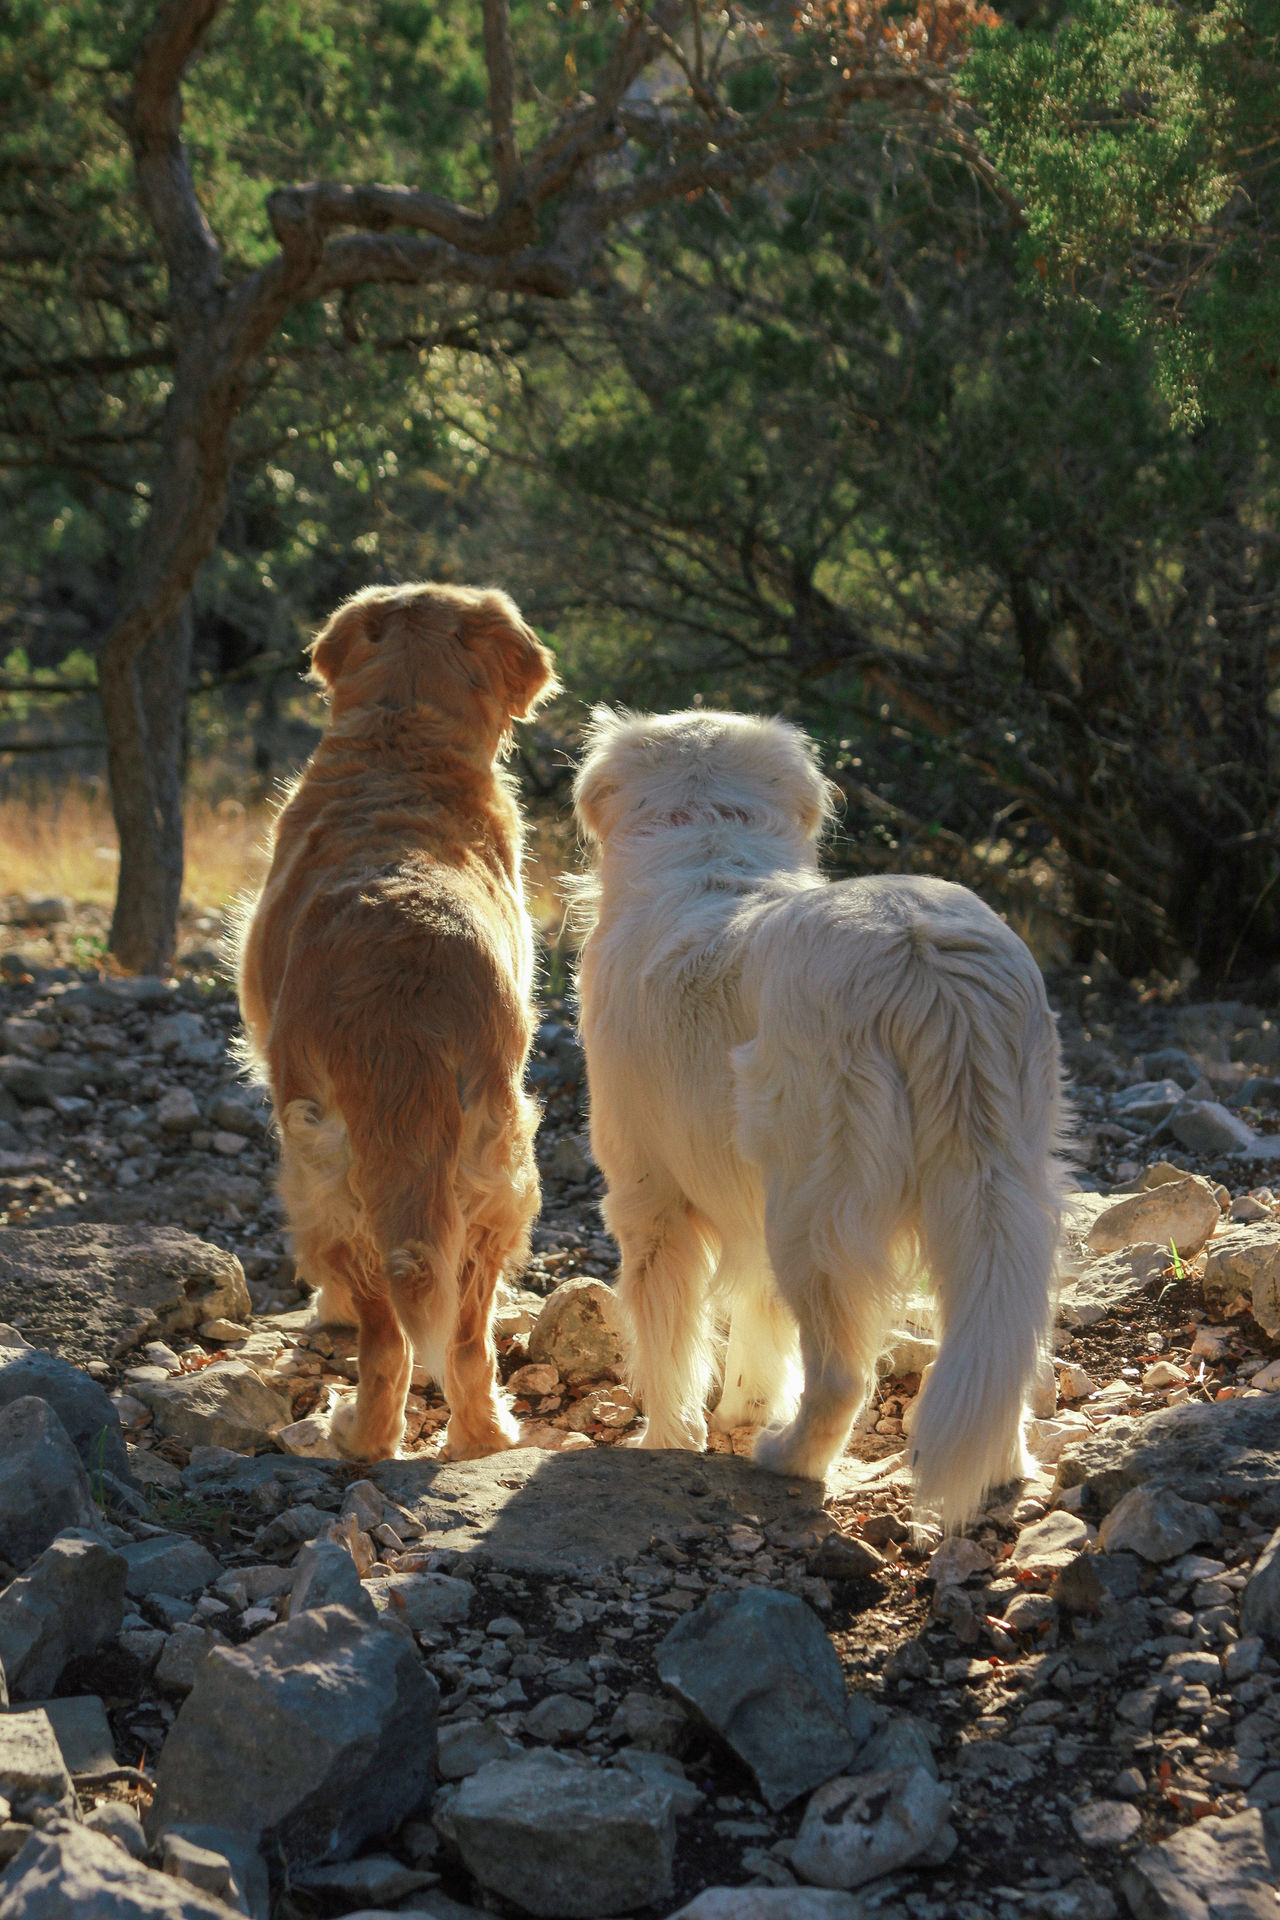 Brothers Buddies Dogs Domestic Animals Friends Friendship Golden Golden Hour Golden Retriever Hiking Hill Country Pair Of Dogs Puppy Puppy Love Ranch Ranch Life Rocks Siblings Summer Texas Together Together Forever Two Dogs